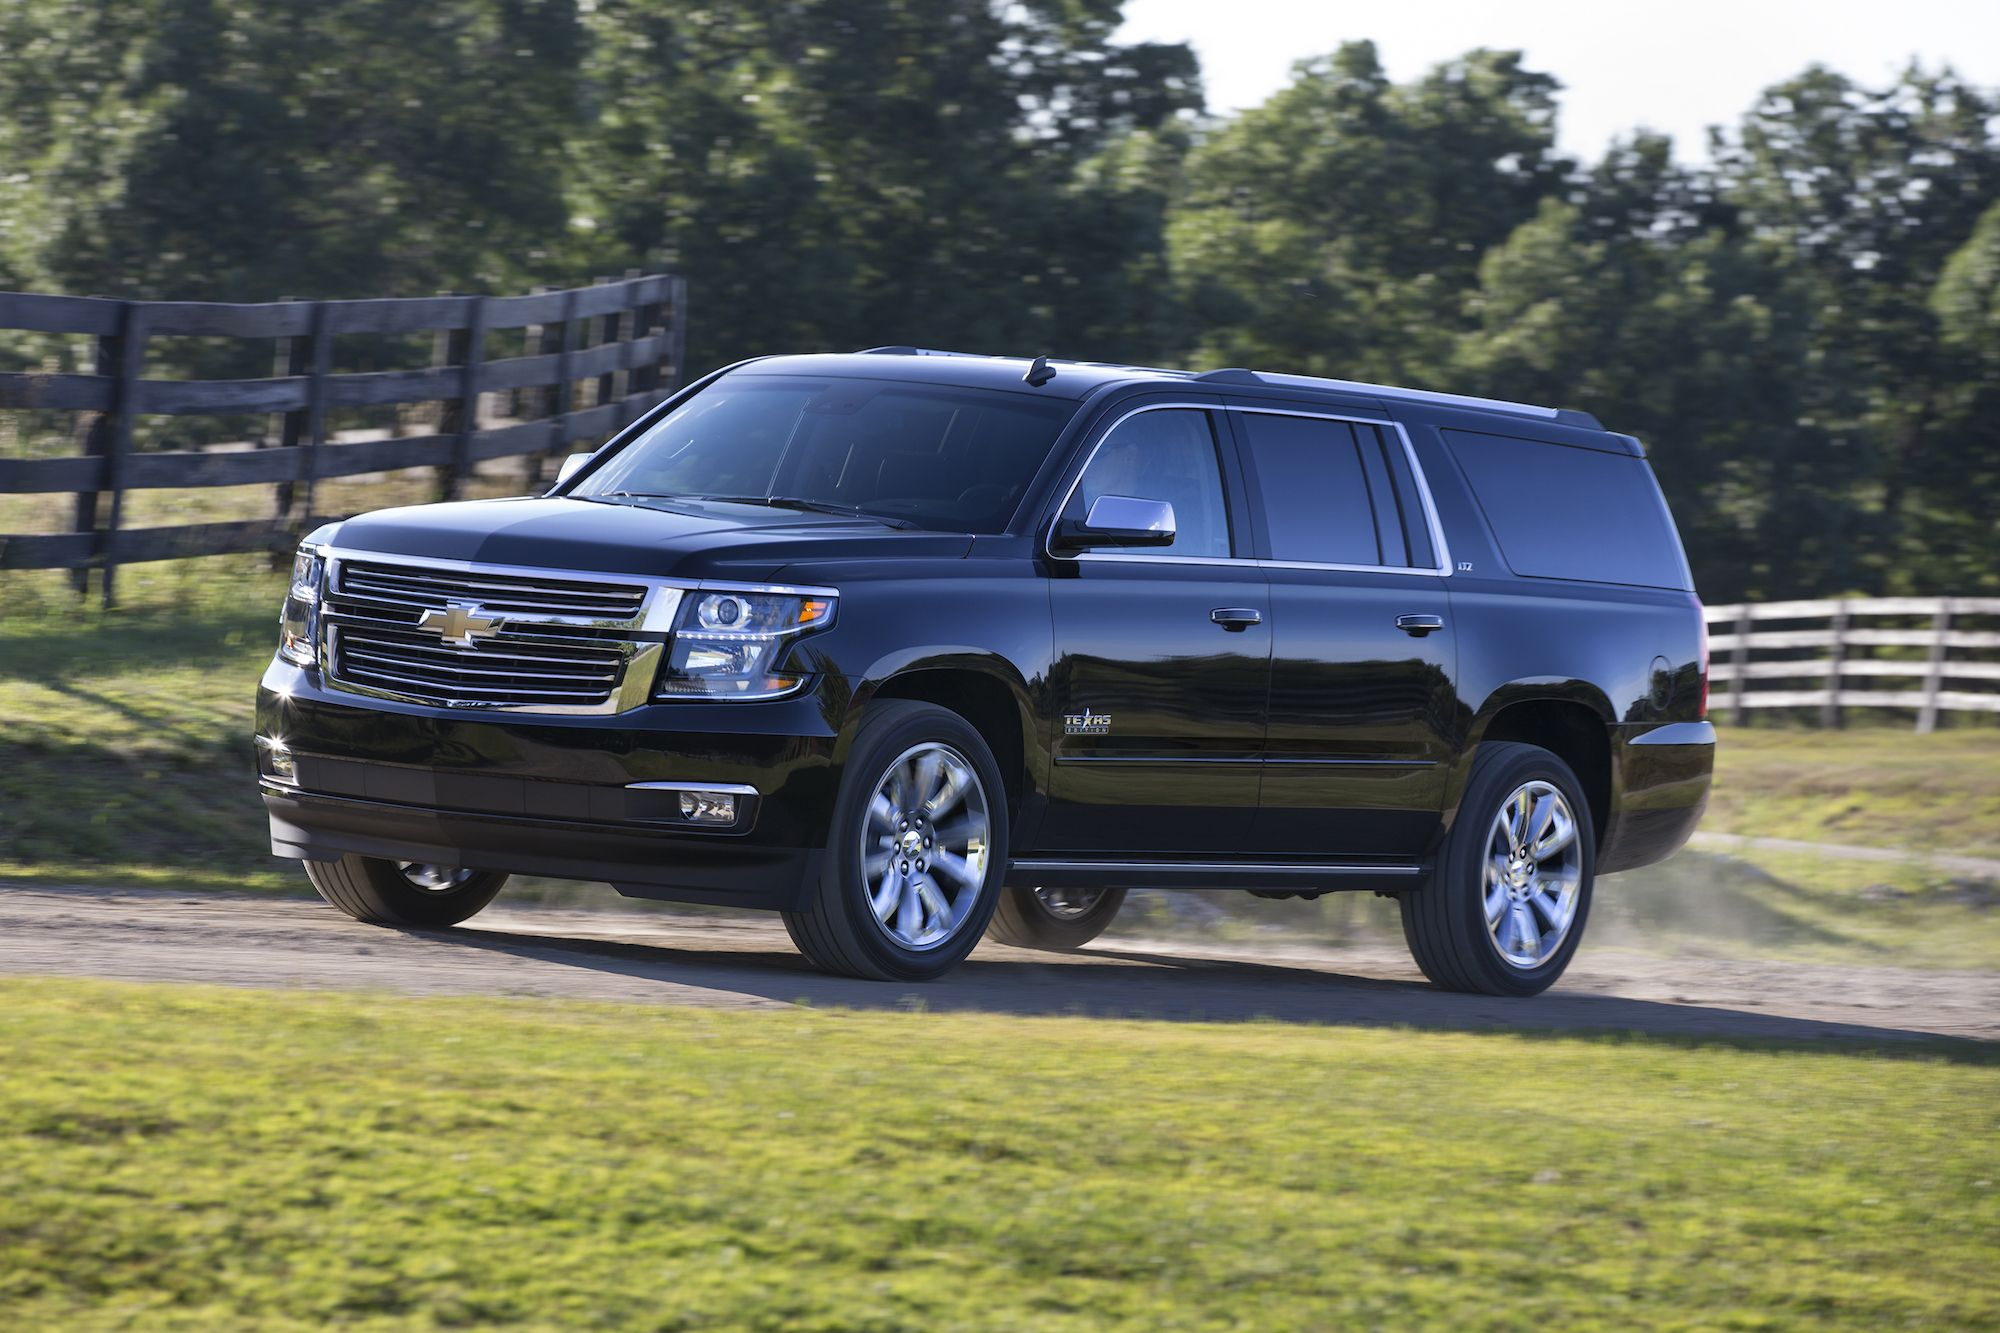 2016 chevy suburban front top suvs 2016 pinterest chevy top suvs and cars